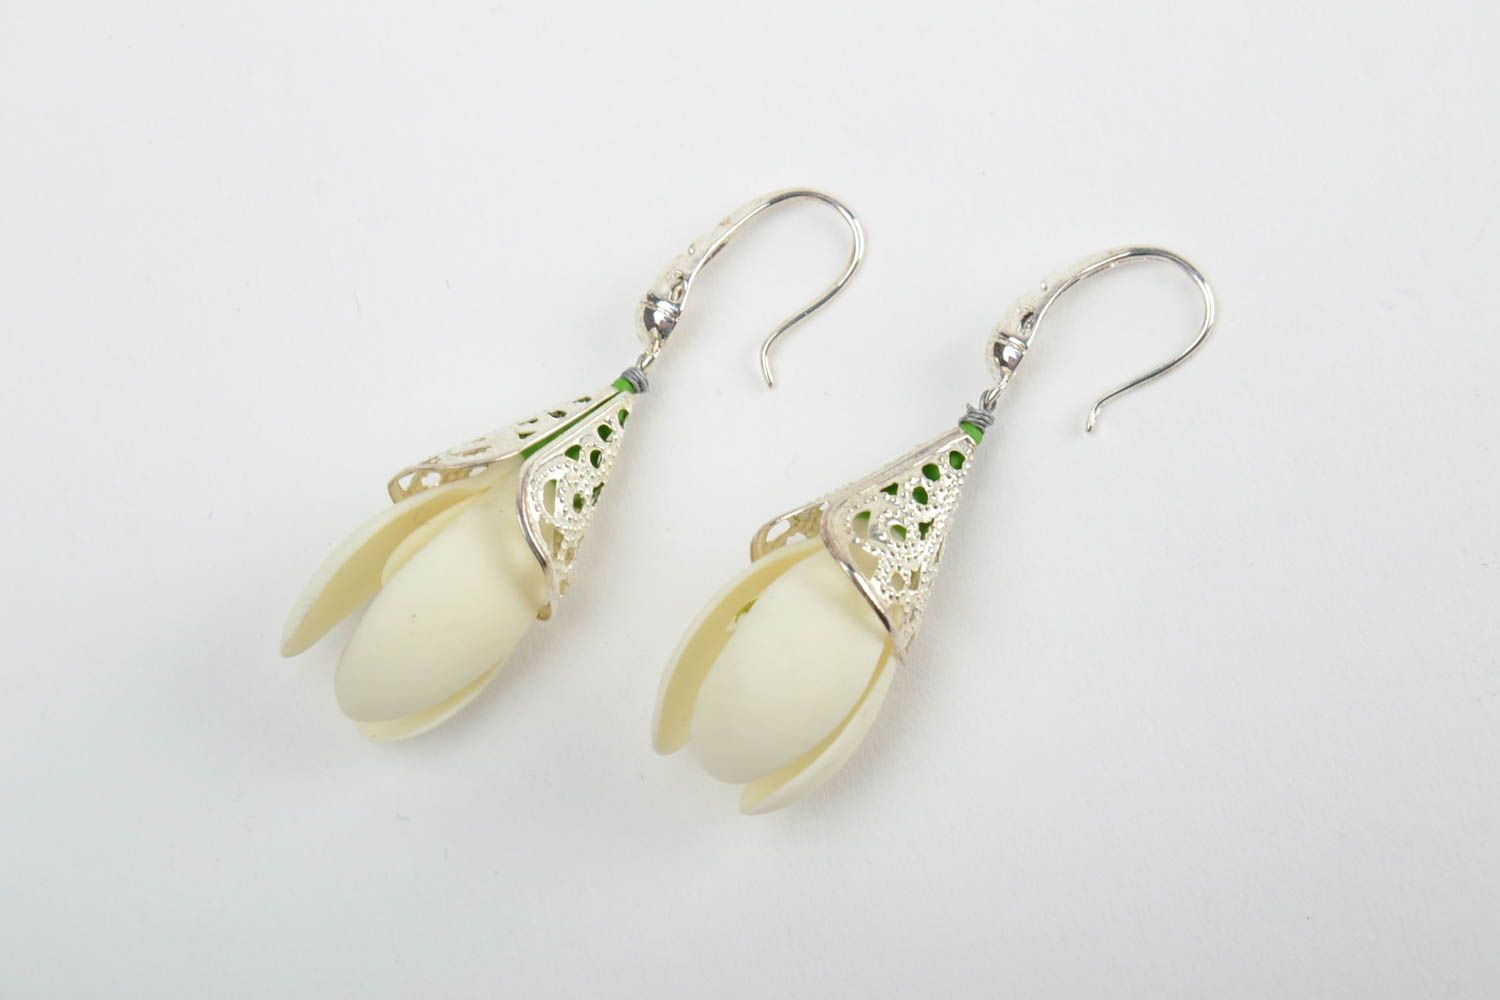 drop earrings Handmade tender dangling earrings with white cold porcelain snowdrop flowers - MADEheart.com